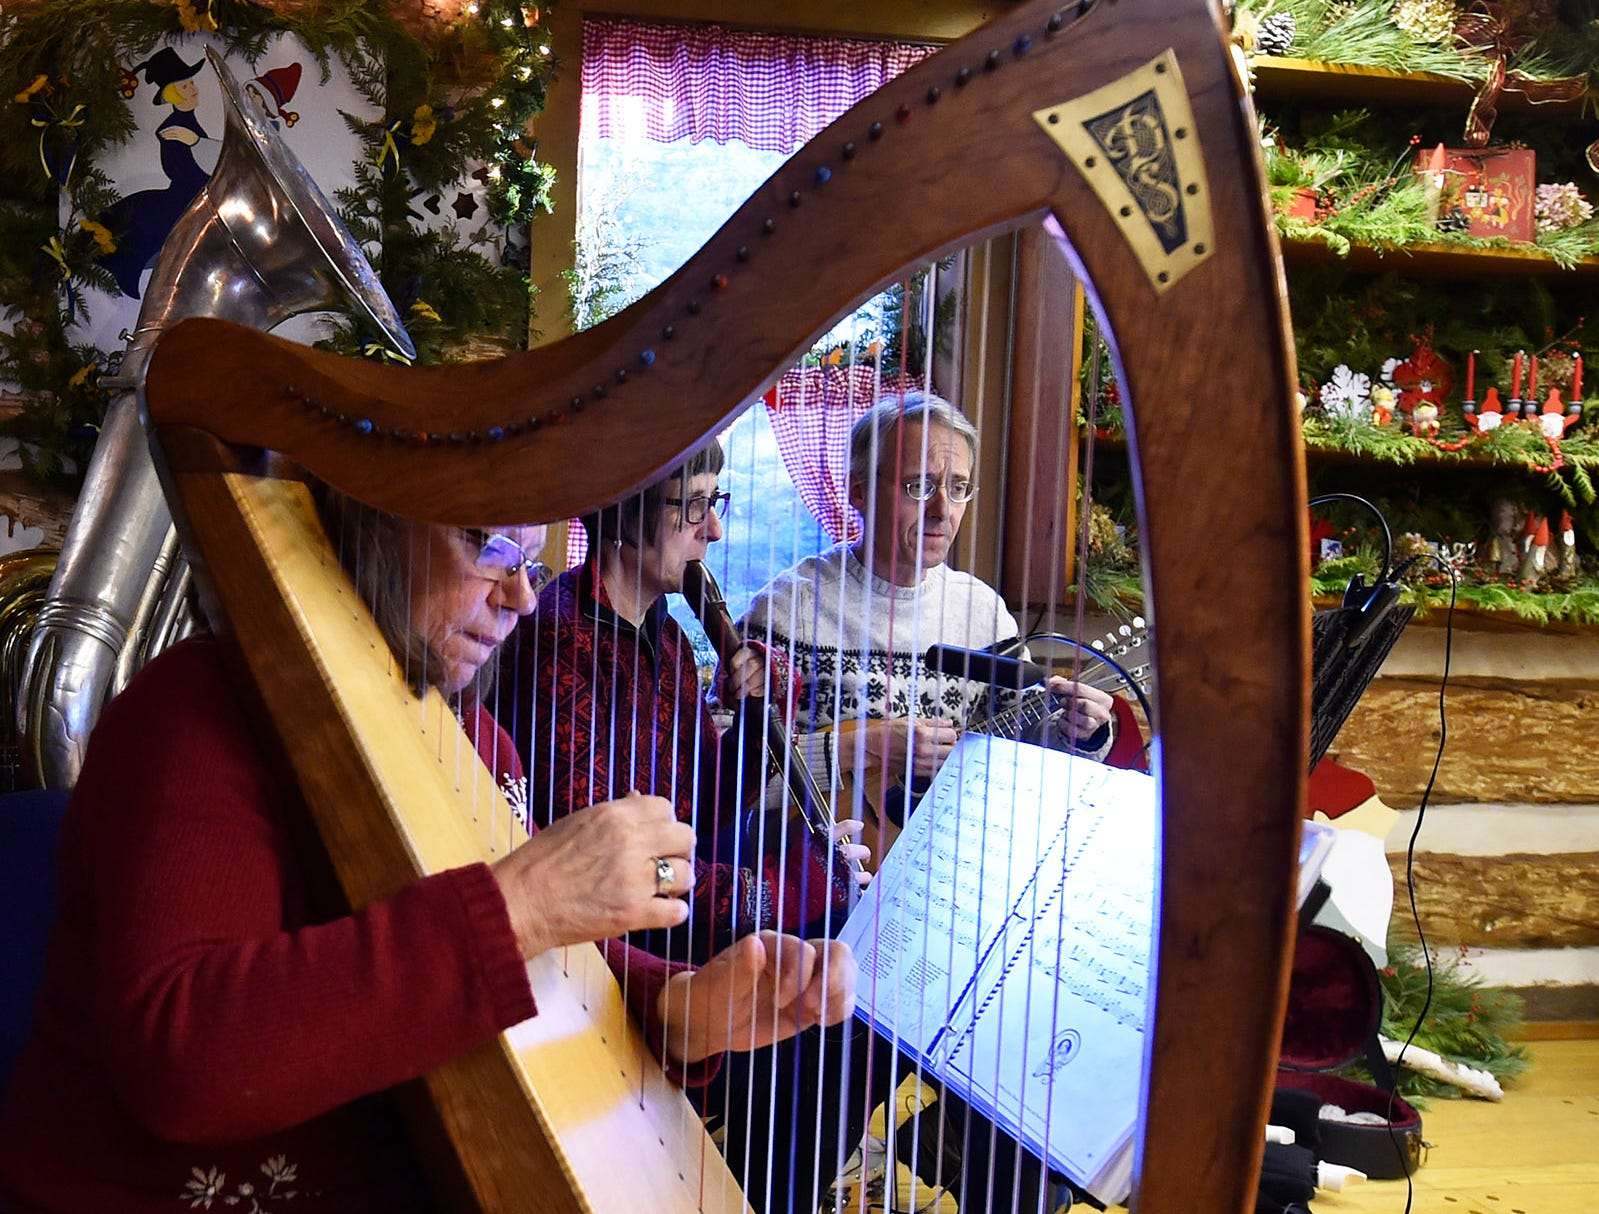 The Dusky Wing band including Dorothy Summers, from left, Vicki Medland and Mike Draney provide some of the holiday music inside Kaye Cabin during Natural Christmas at The Ridges Sanctuary, 8166 State 57, Baileys Harbor. Tina M. Gohr/USA TODAY NETWORK-Wisconsin